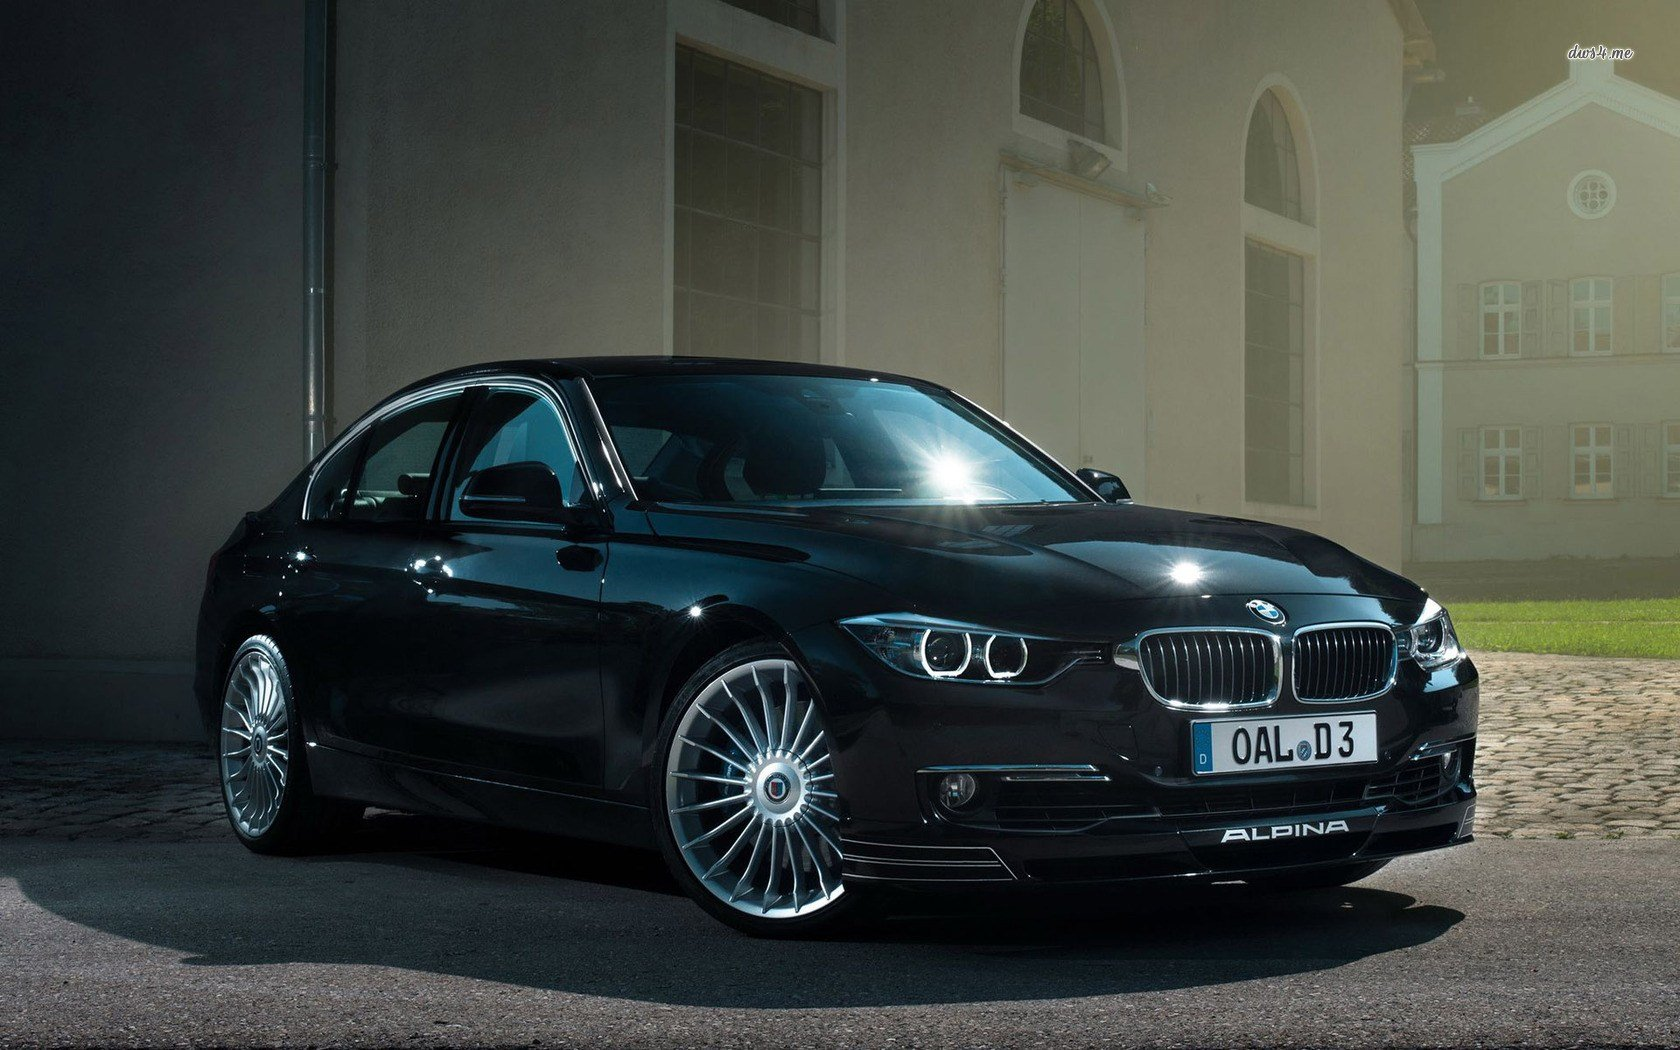 Latest 2013 Alpina Bmw D3 Bi Turbo Wallpaper Car Wallpapers Free Download